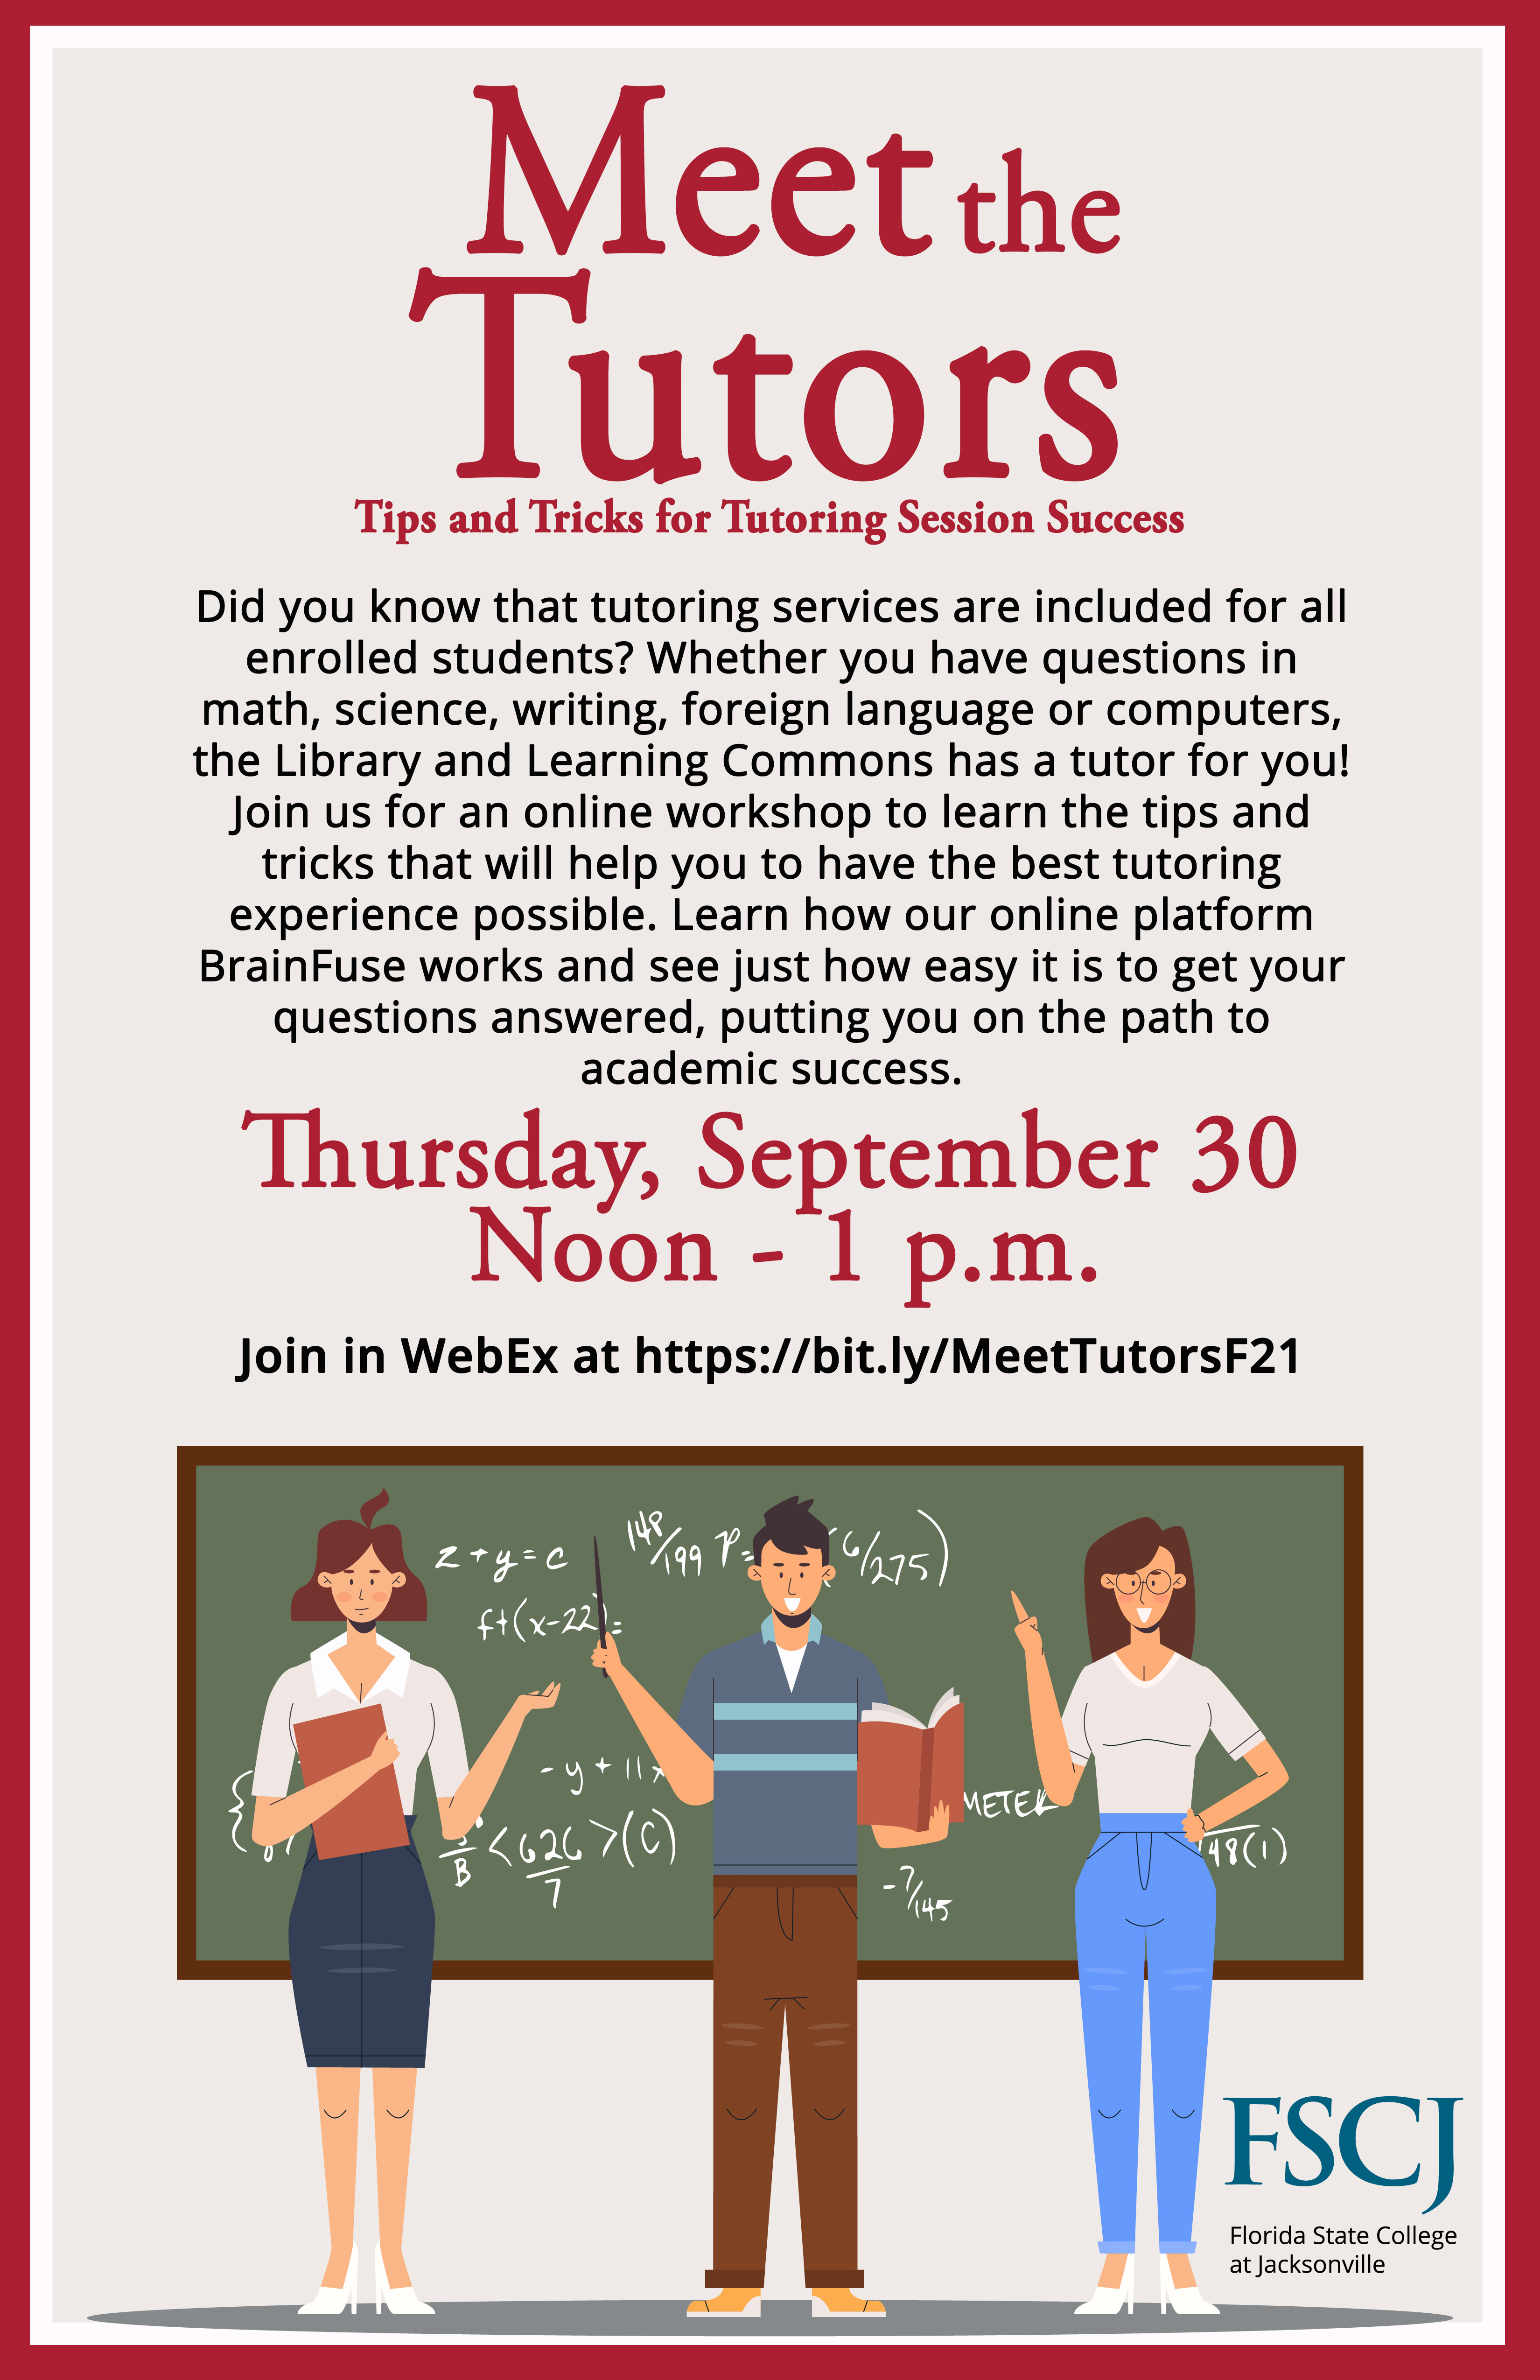 Meet the Tutors: Tips and Tricks for Tutoring Session Success